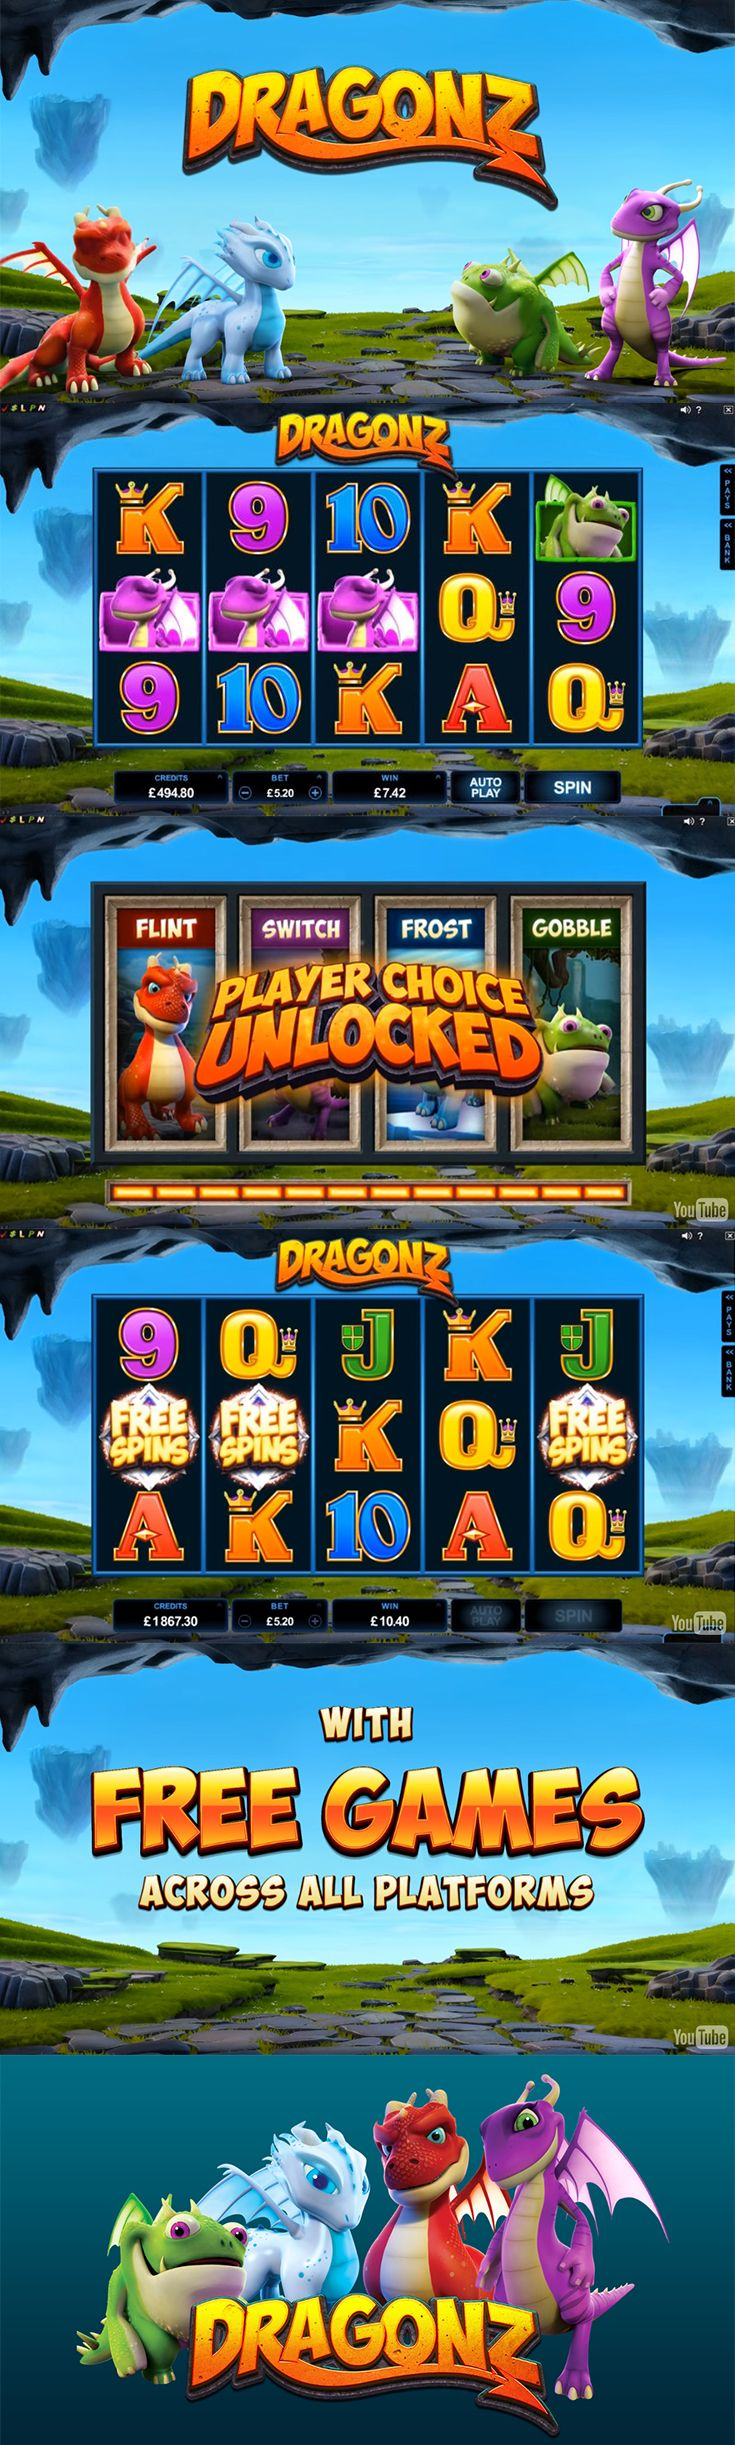 Microgaming Releases New Dragonz slot - Play it Today